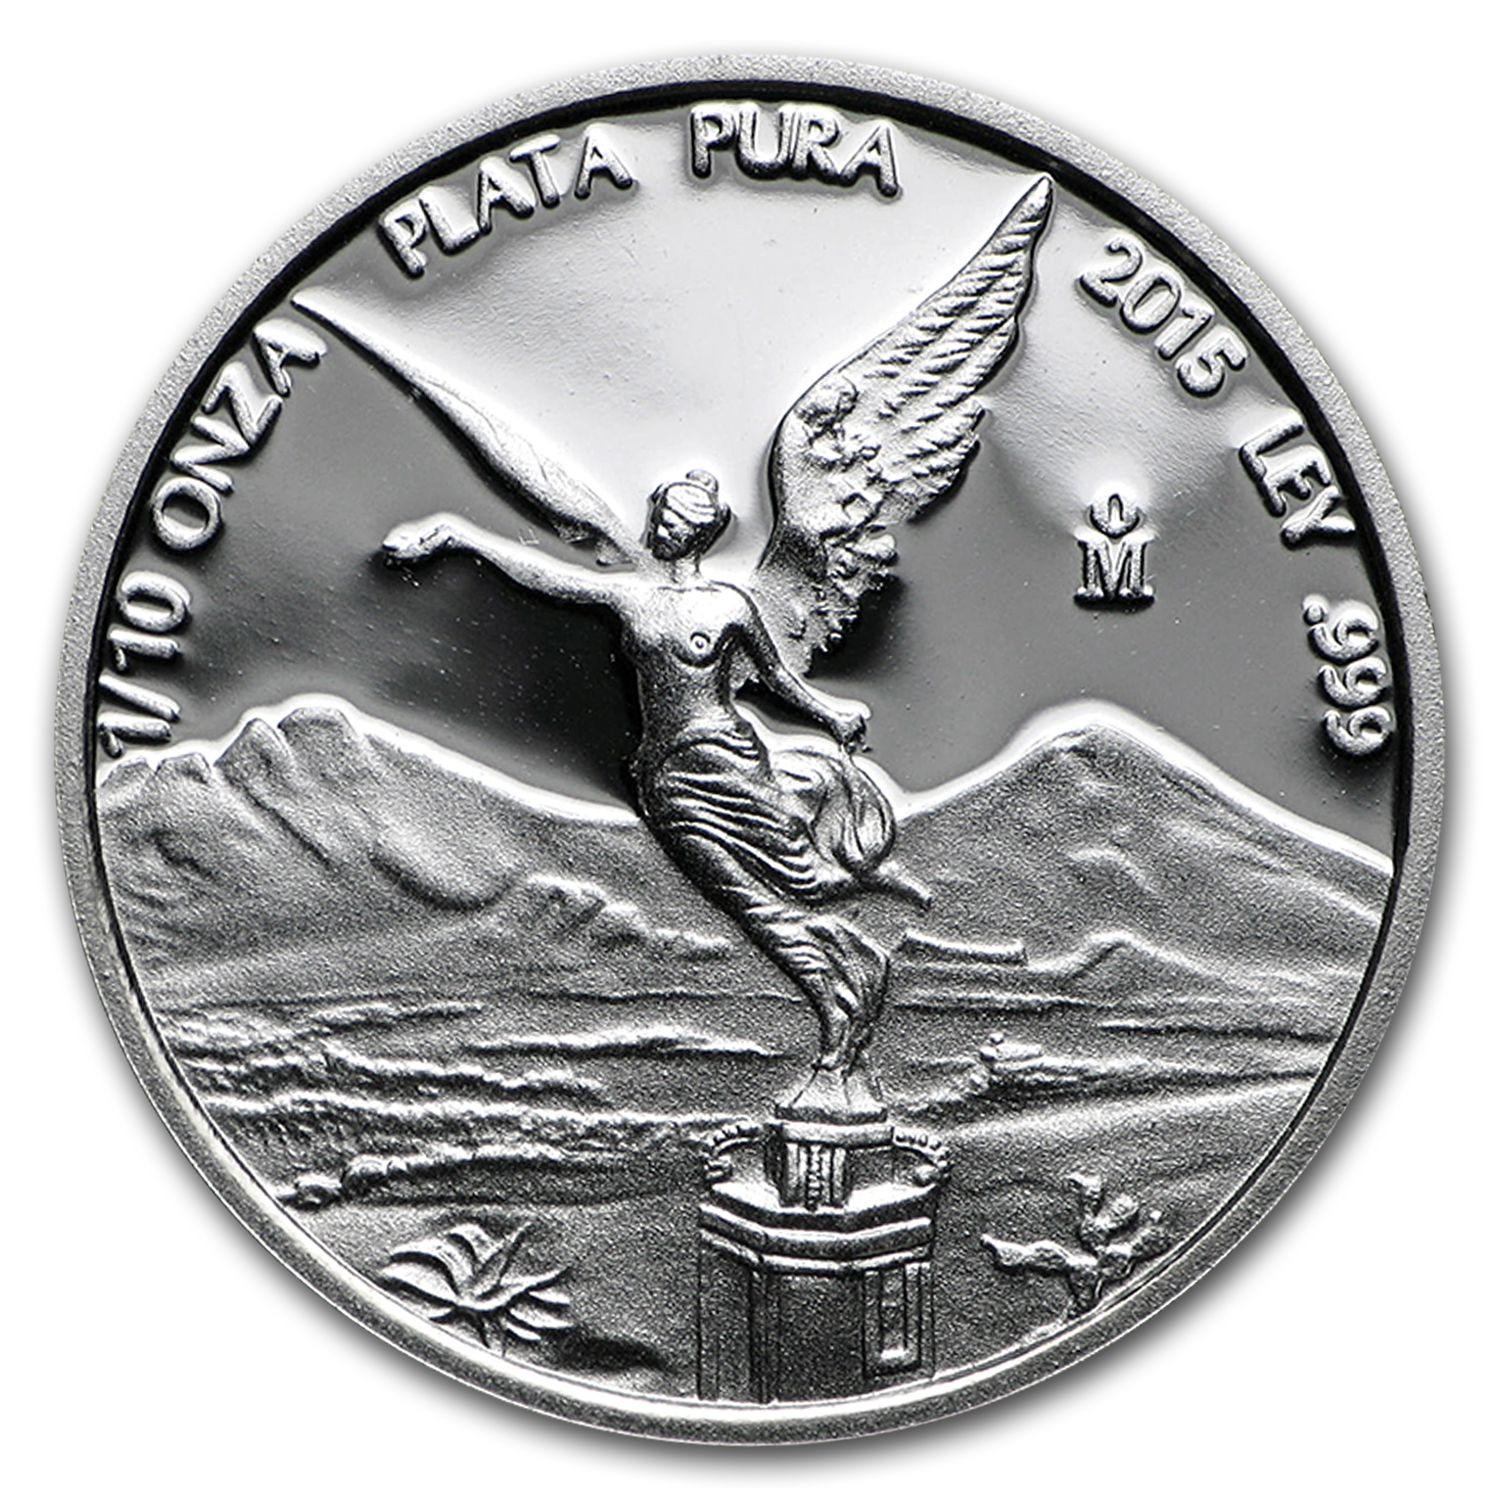 2015 Mexico 1/10 oz Silver Libertad Proof (In Capsule)